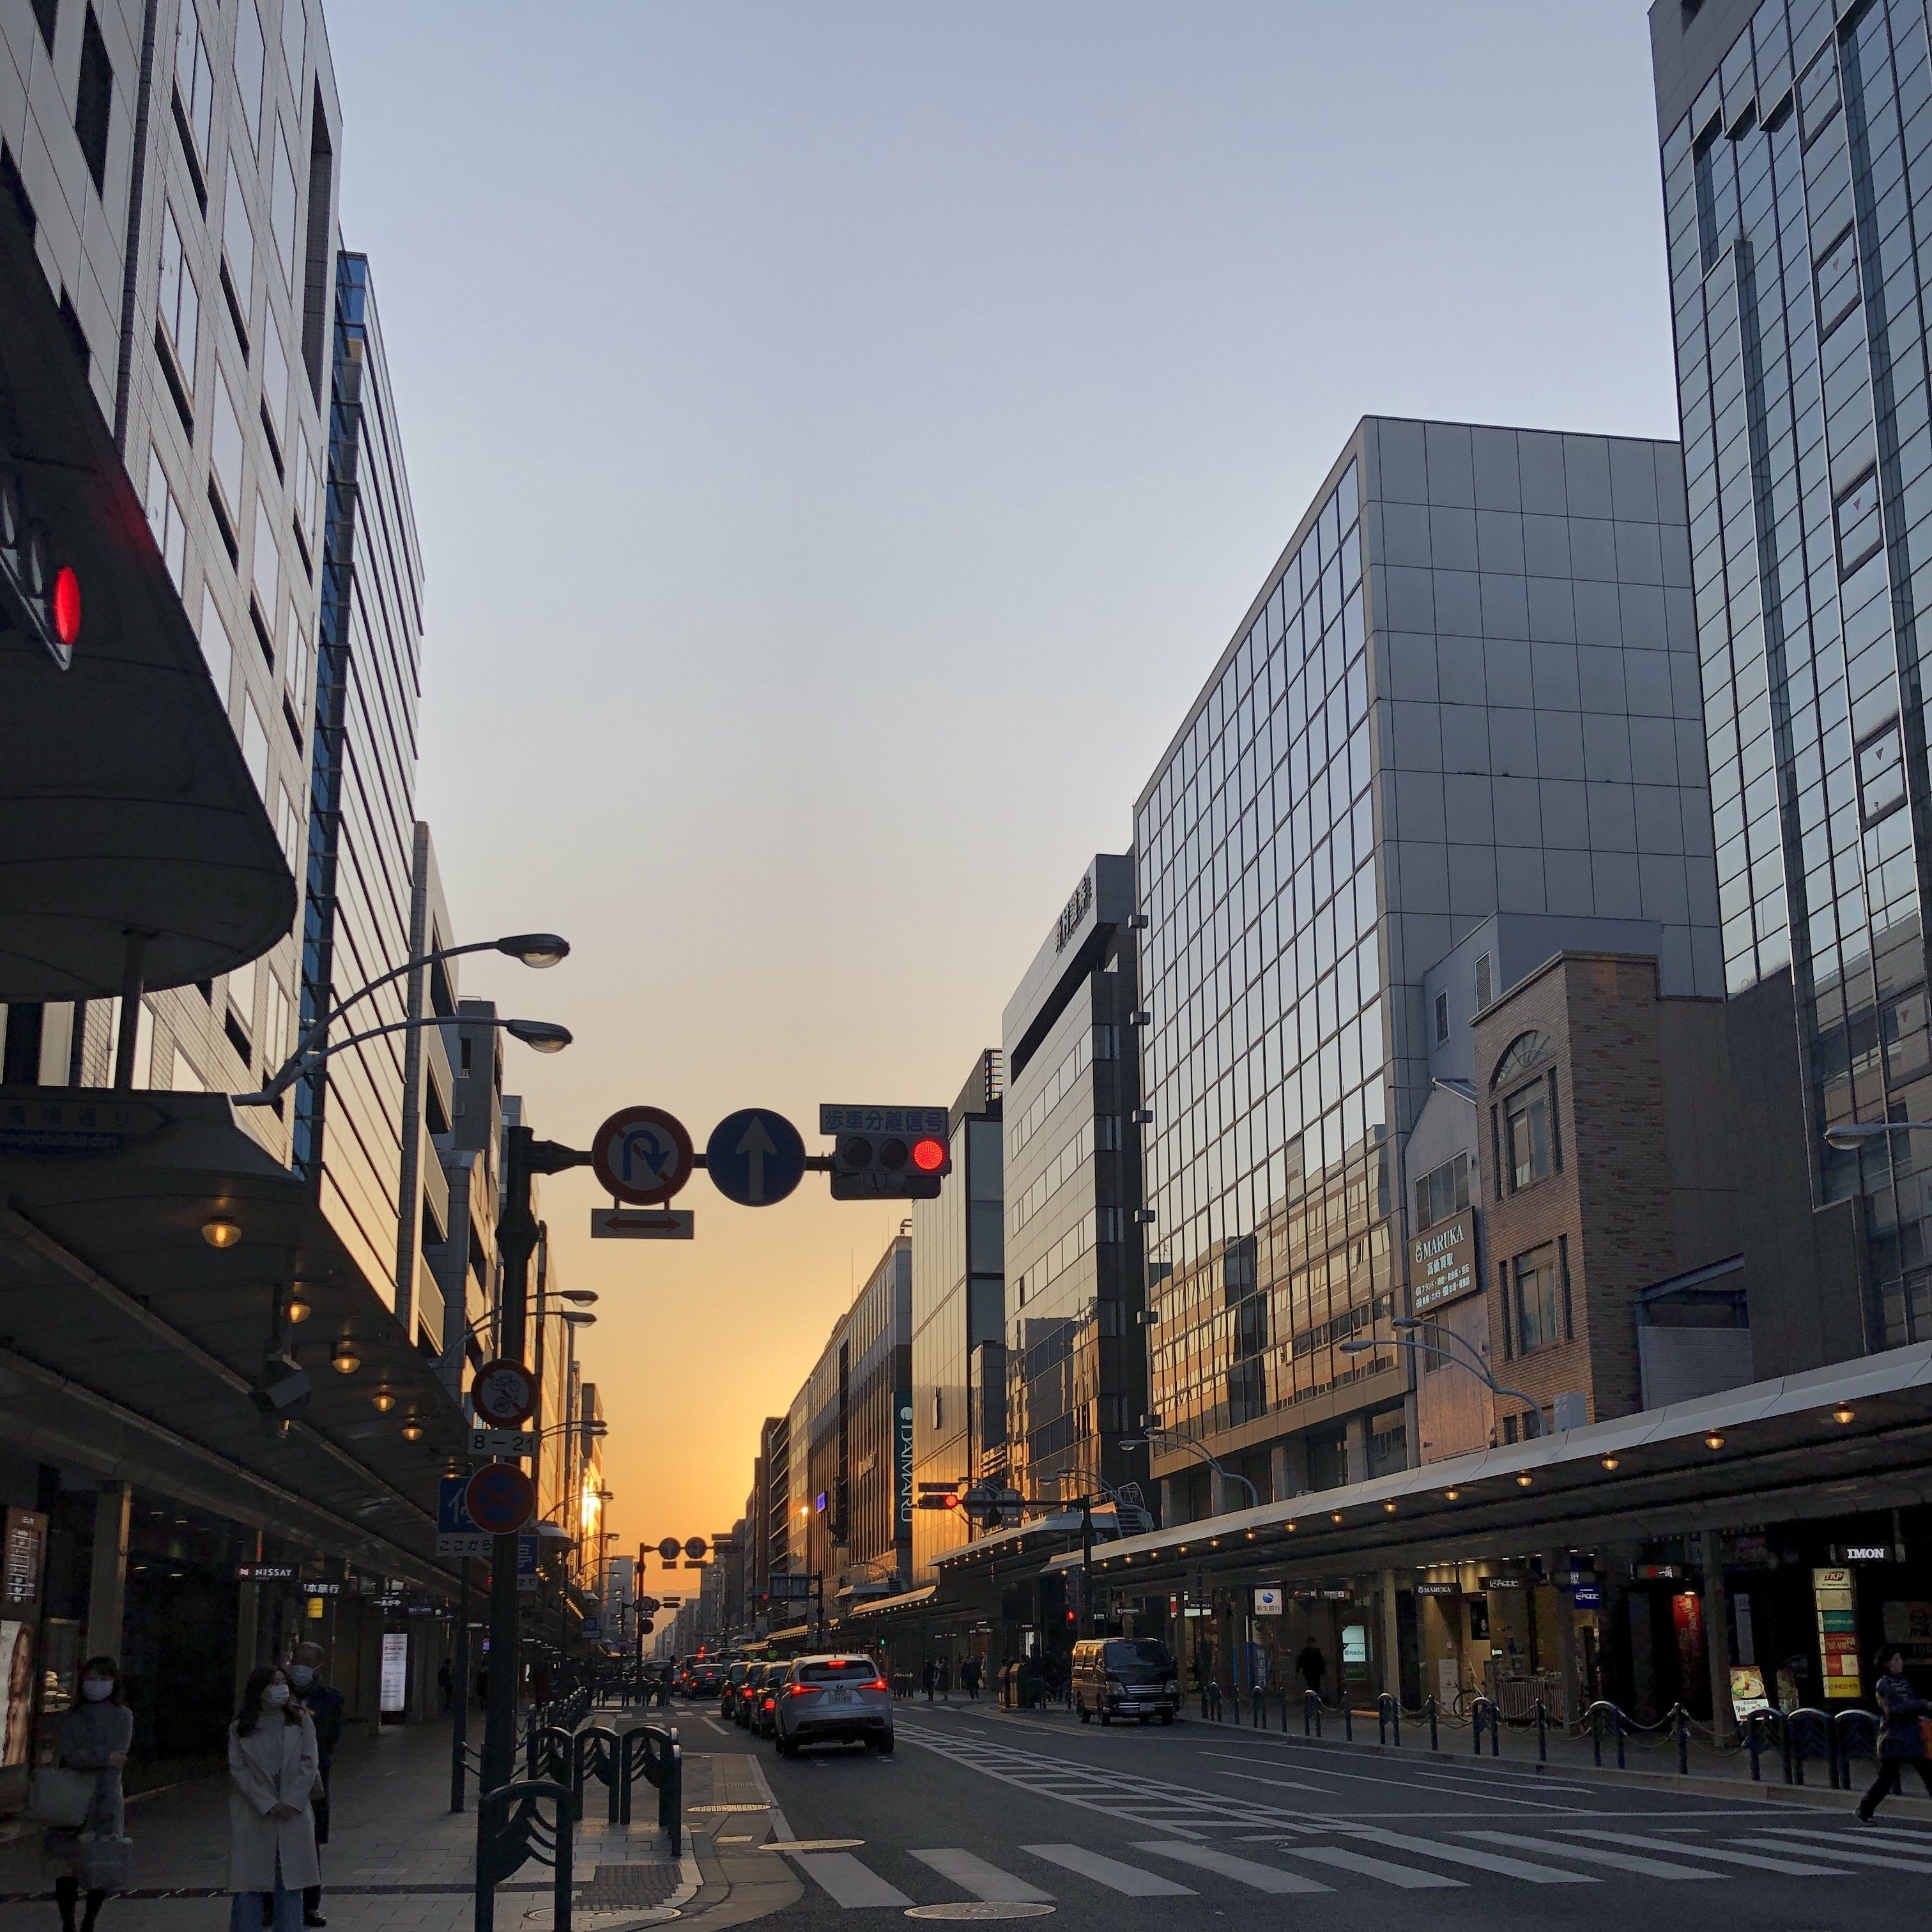 Downtown Kyoto at 6PM